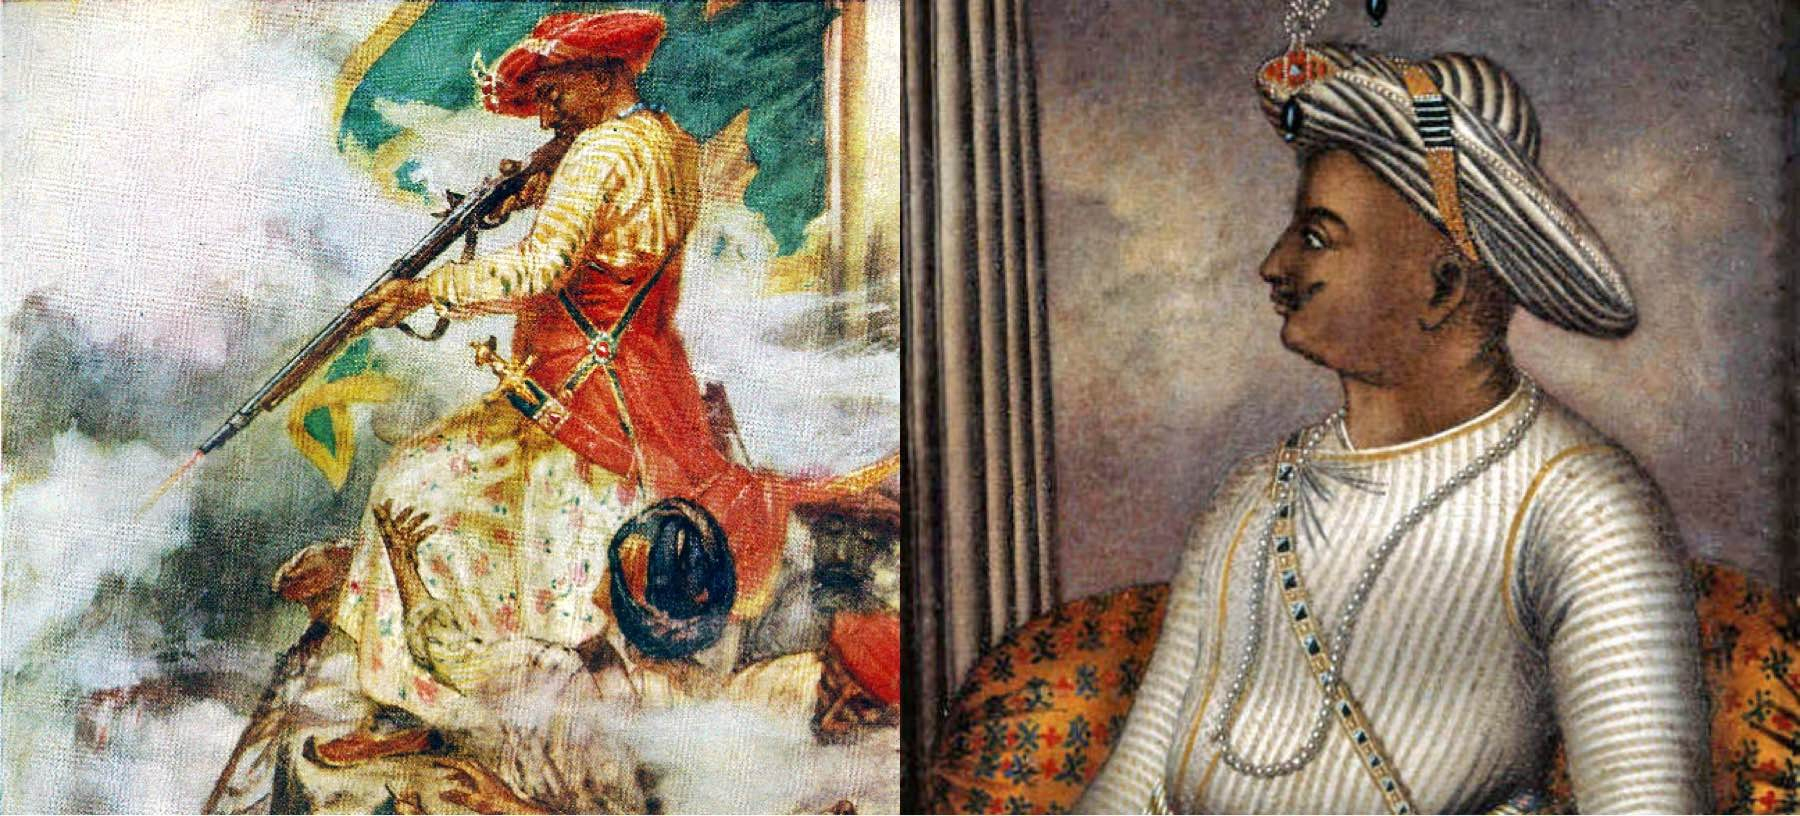 Union minister Anantkumar Hegde says Tipu Sultan, who died fighting the British, was a 'brutal killer, wretched fanatic and mass rapist' who deserves no glorification. Photo credit: Wikimedia Commons